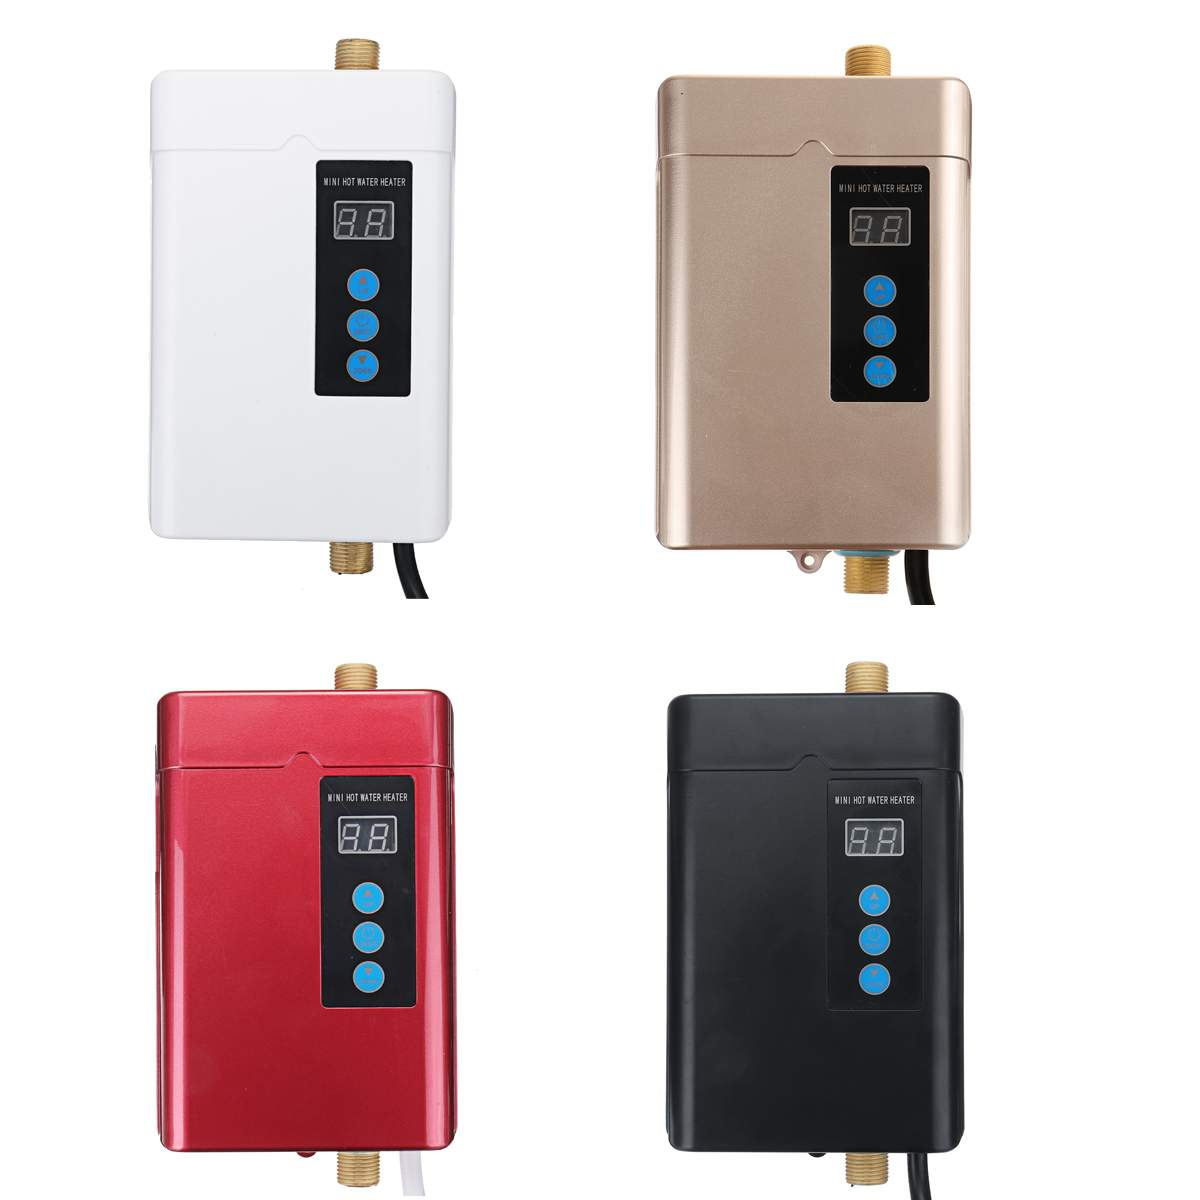 4000W 110-240V Instant Electric Mini Tankless Water Heater Hot Instantaneous Water Heater System for Kitchen Bathroom